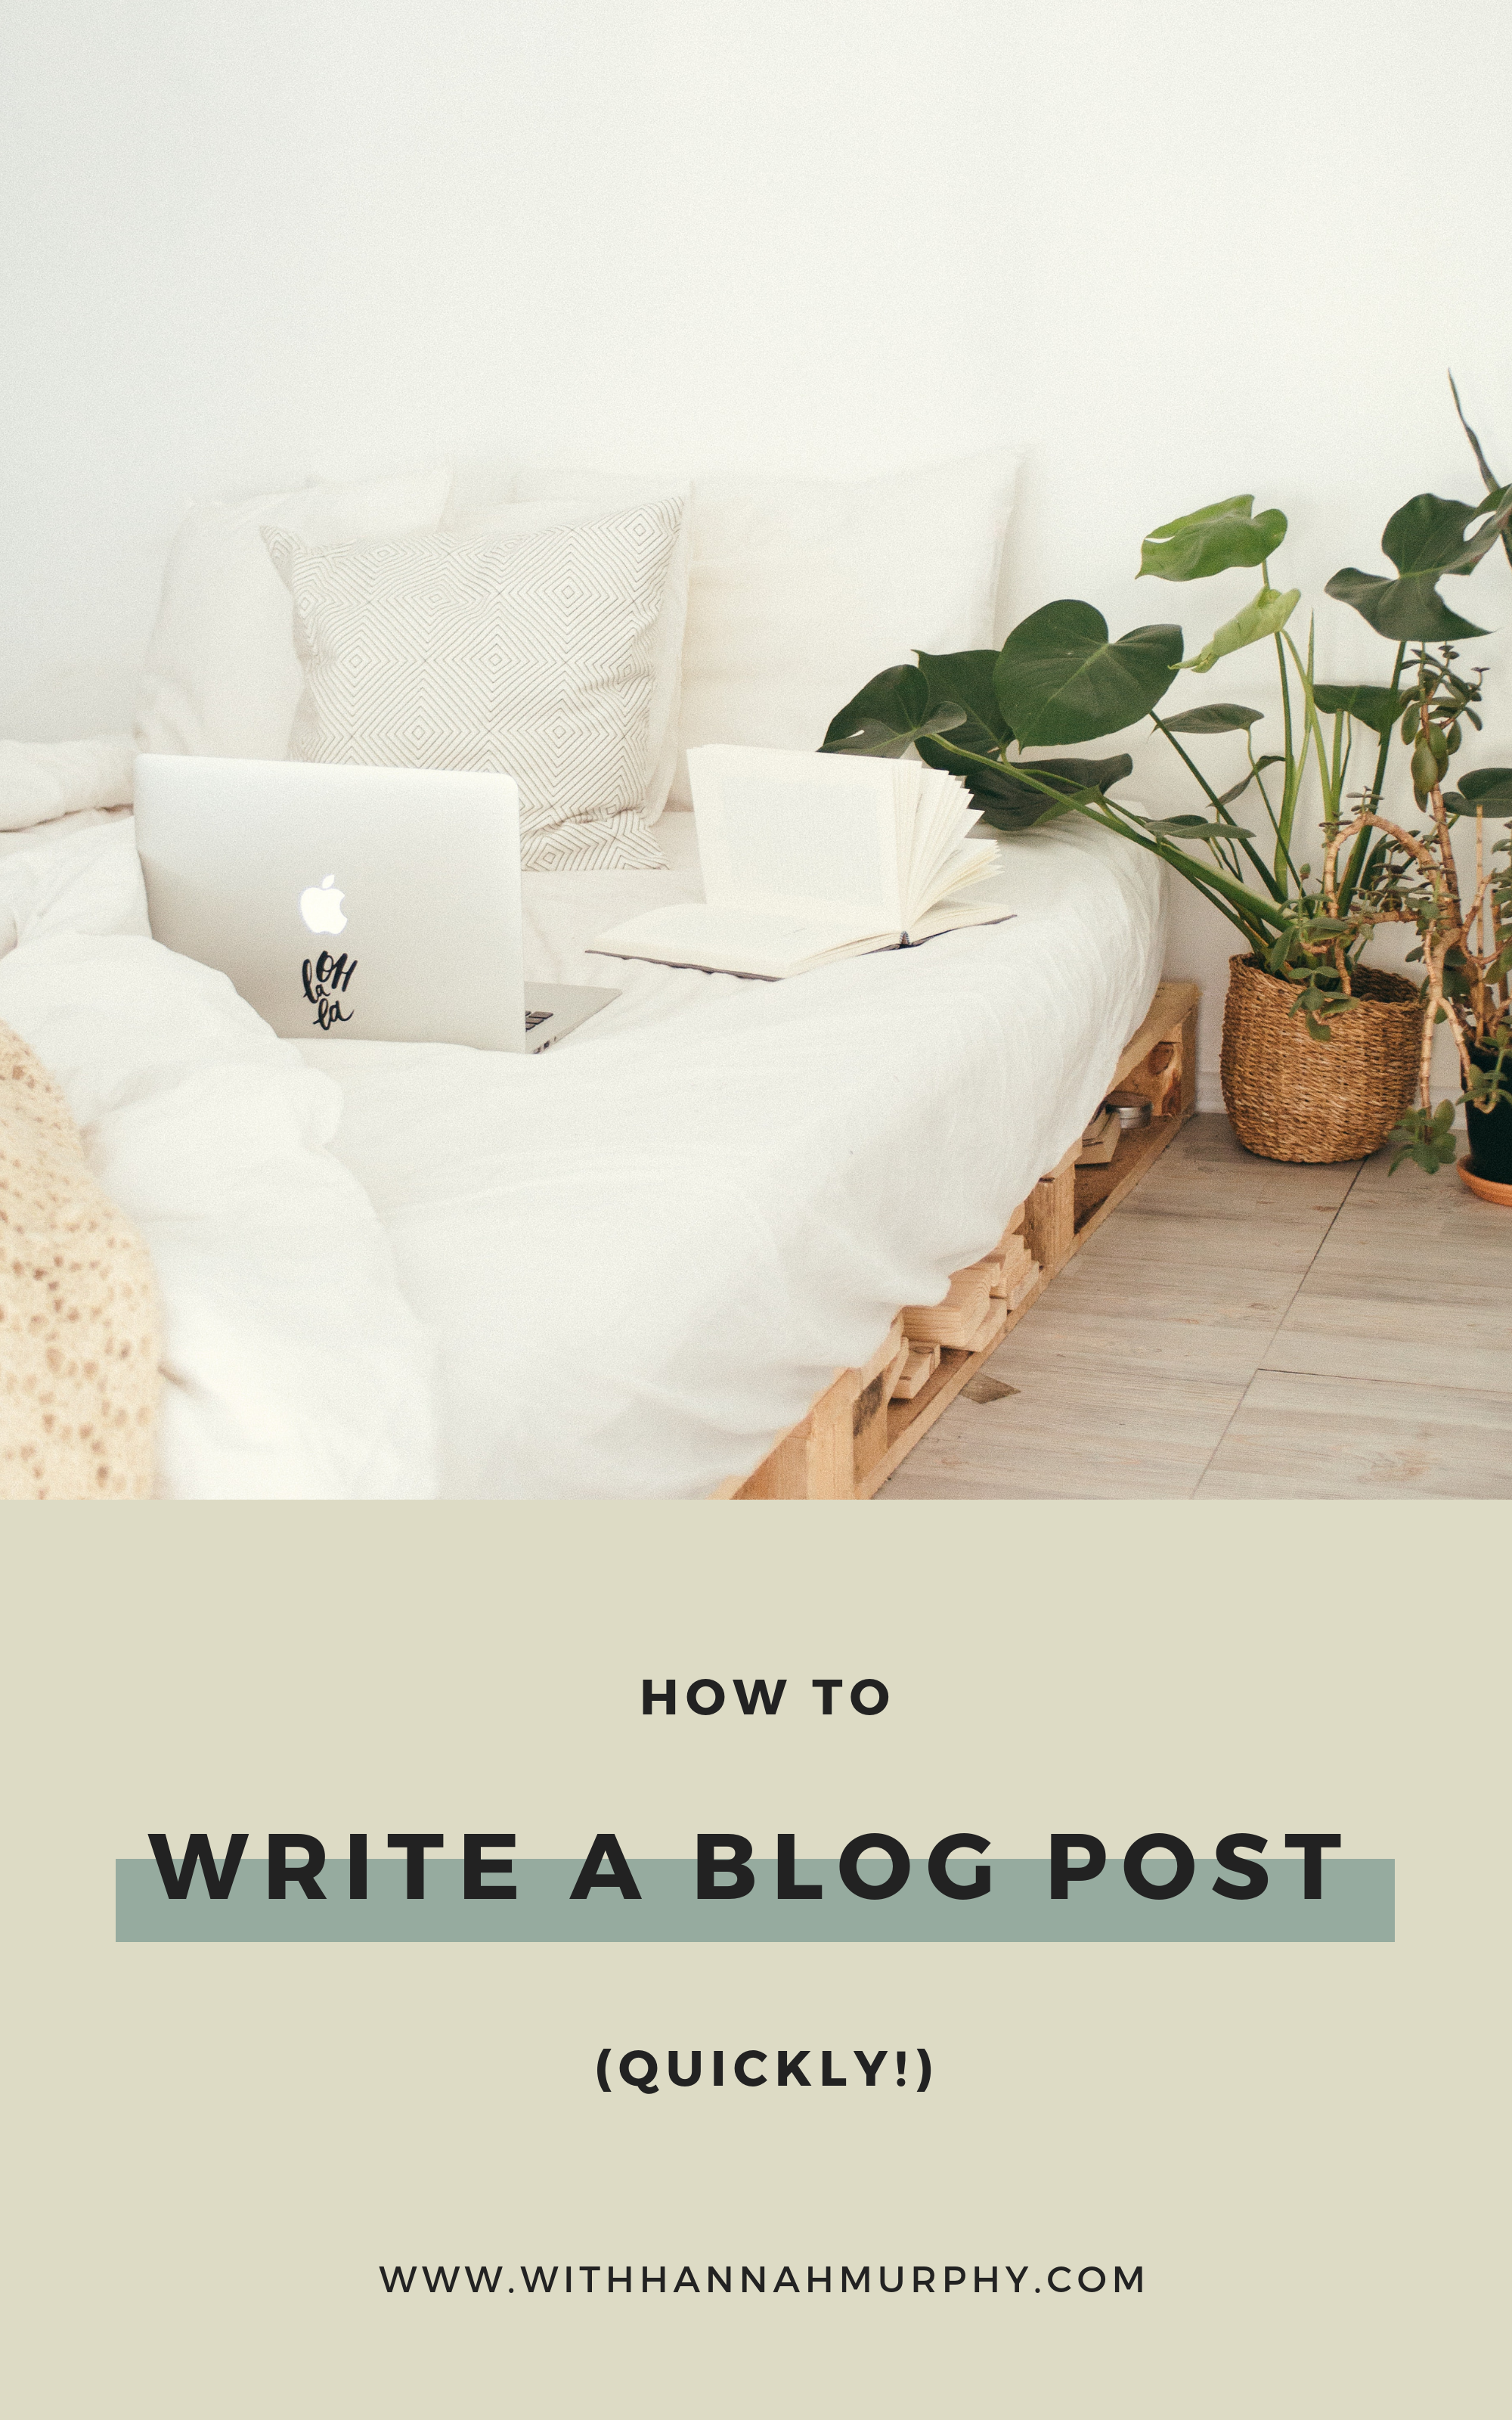 Do you find blog writing time consuming? In this blog post, I share with you how I write a months worth of blog posts within a couple of hours!